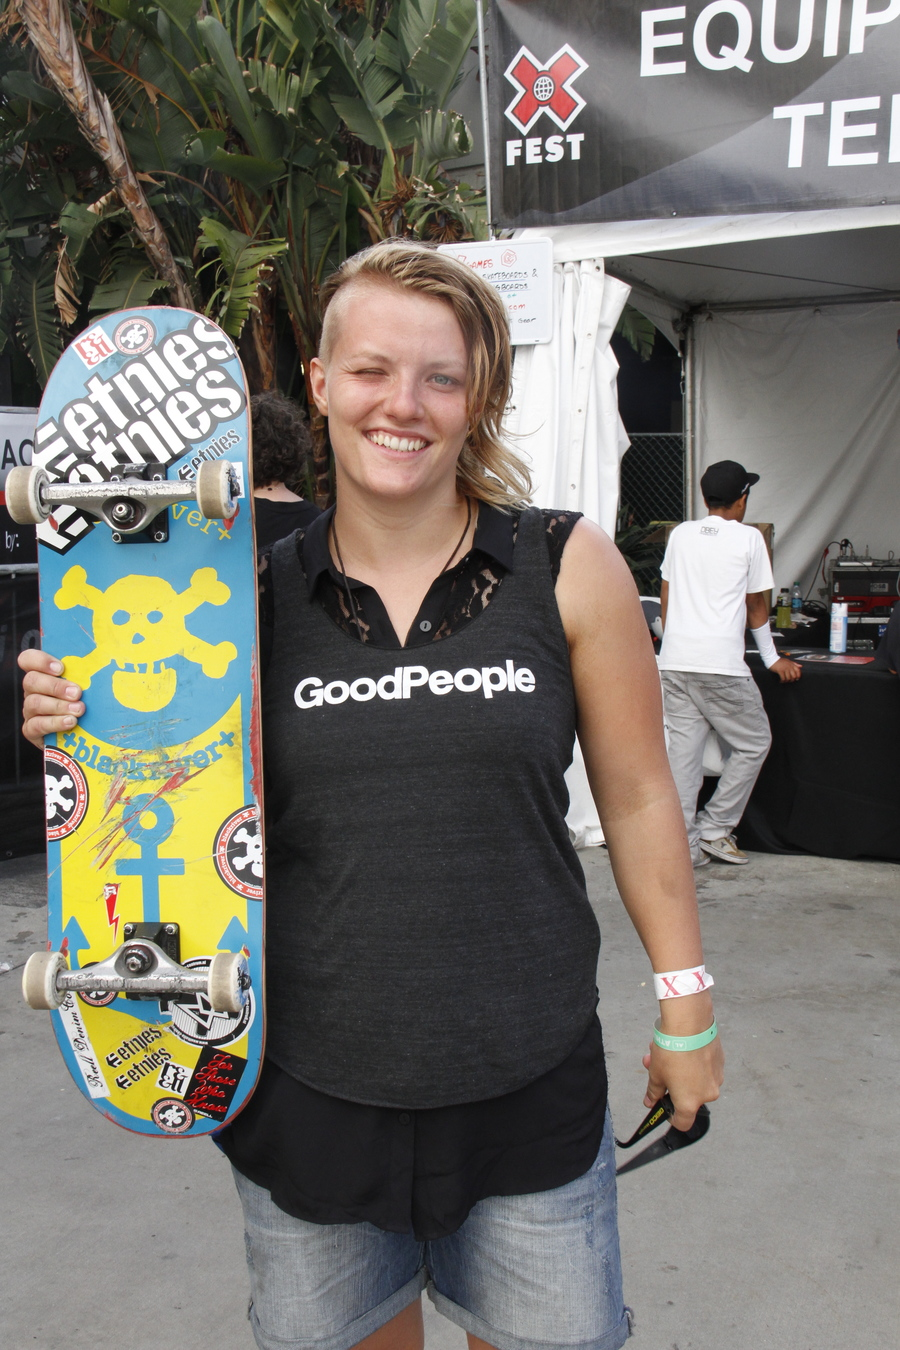 Pro Skater Candy Jacobs stopped by the GoodPeople interactive park to skate with the ladies, she is super cool!